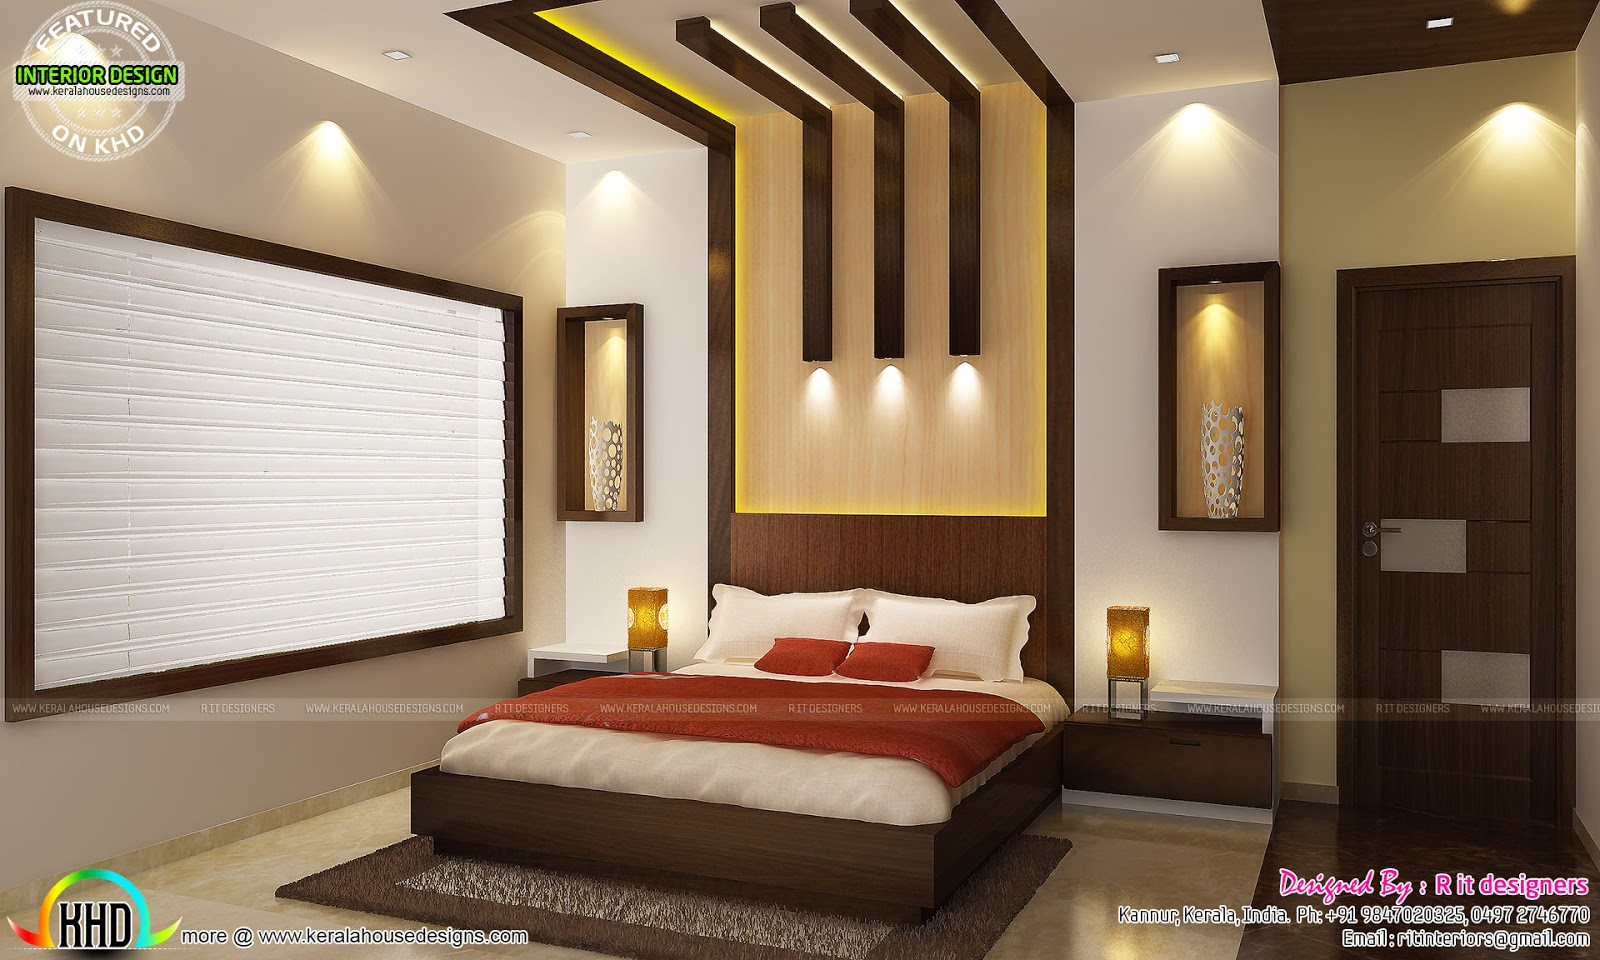 Kitchen living bedroom dining interior decor kerala for 10 10 room interior design